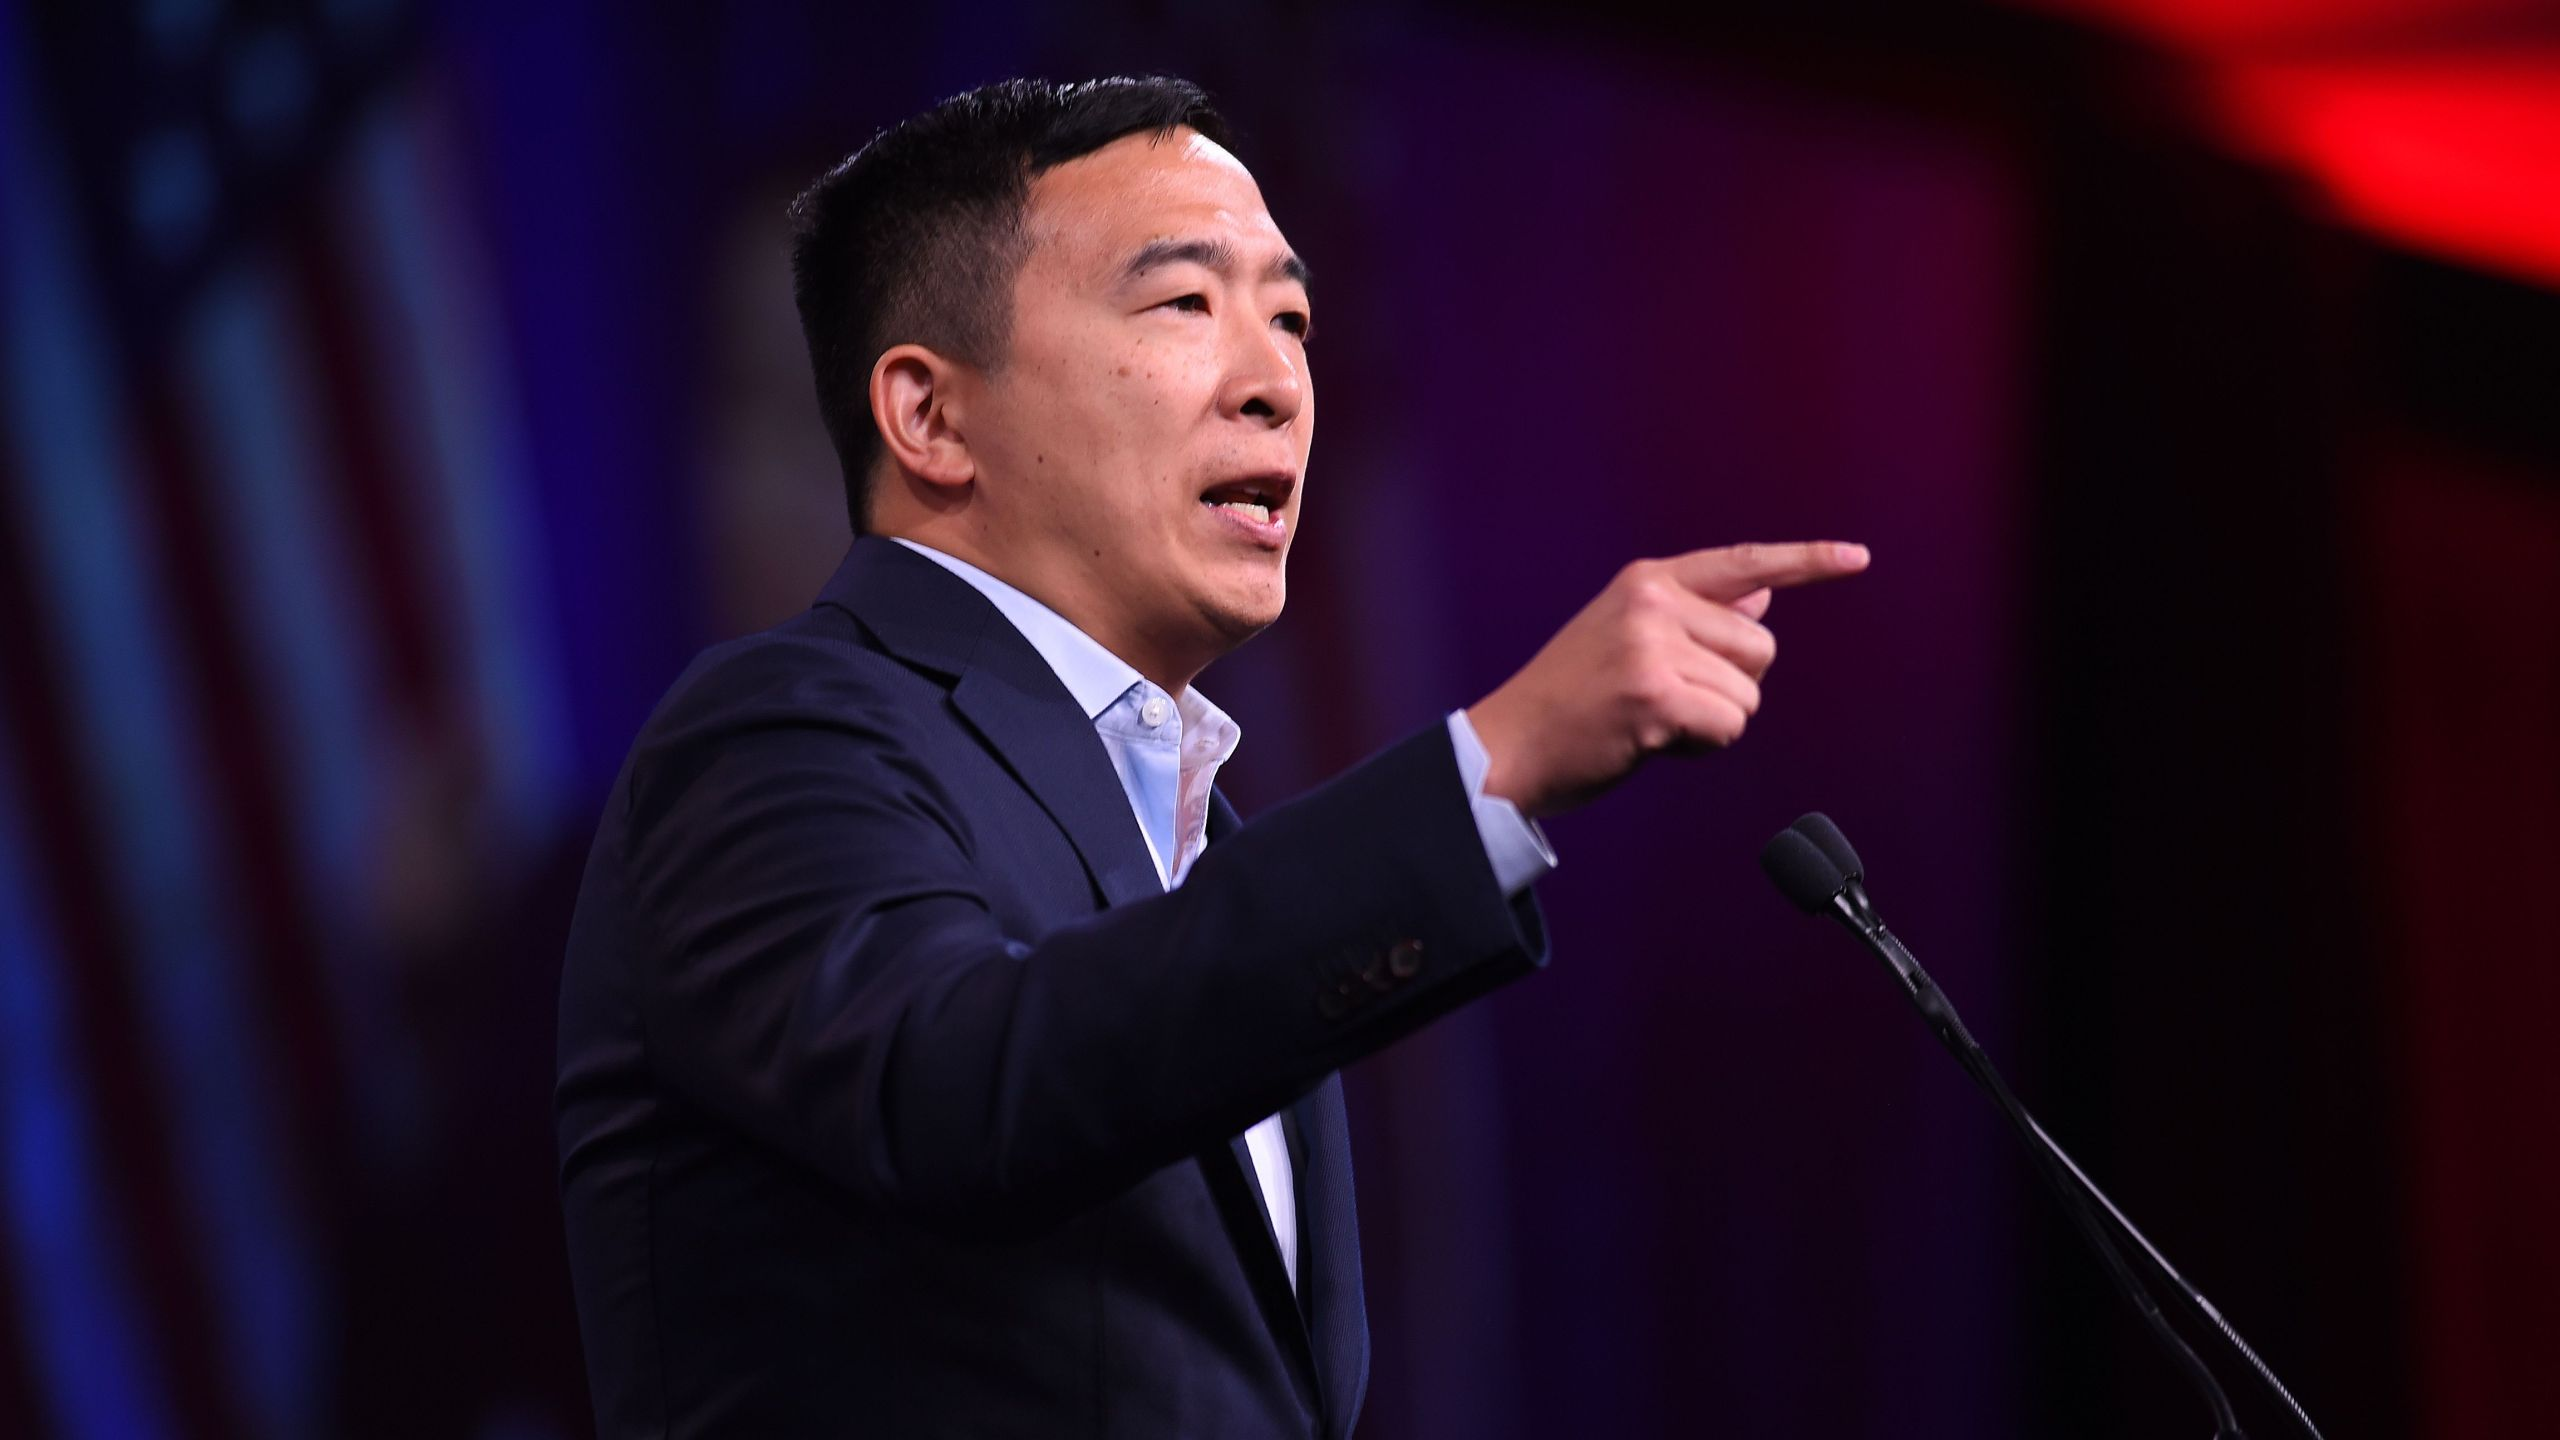 2020 Democratic Presidential hopeful Andrew Yang speaks on stage during the Democratic National Committee's summer meeting in San Francisco, California on August 23, 2019. (Credit: JOSH EDELSON/AFP/Getty Images)